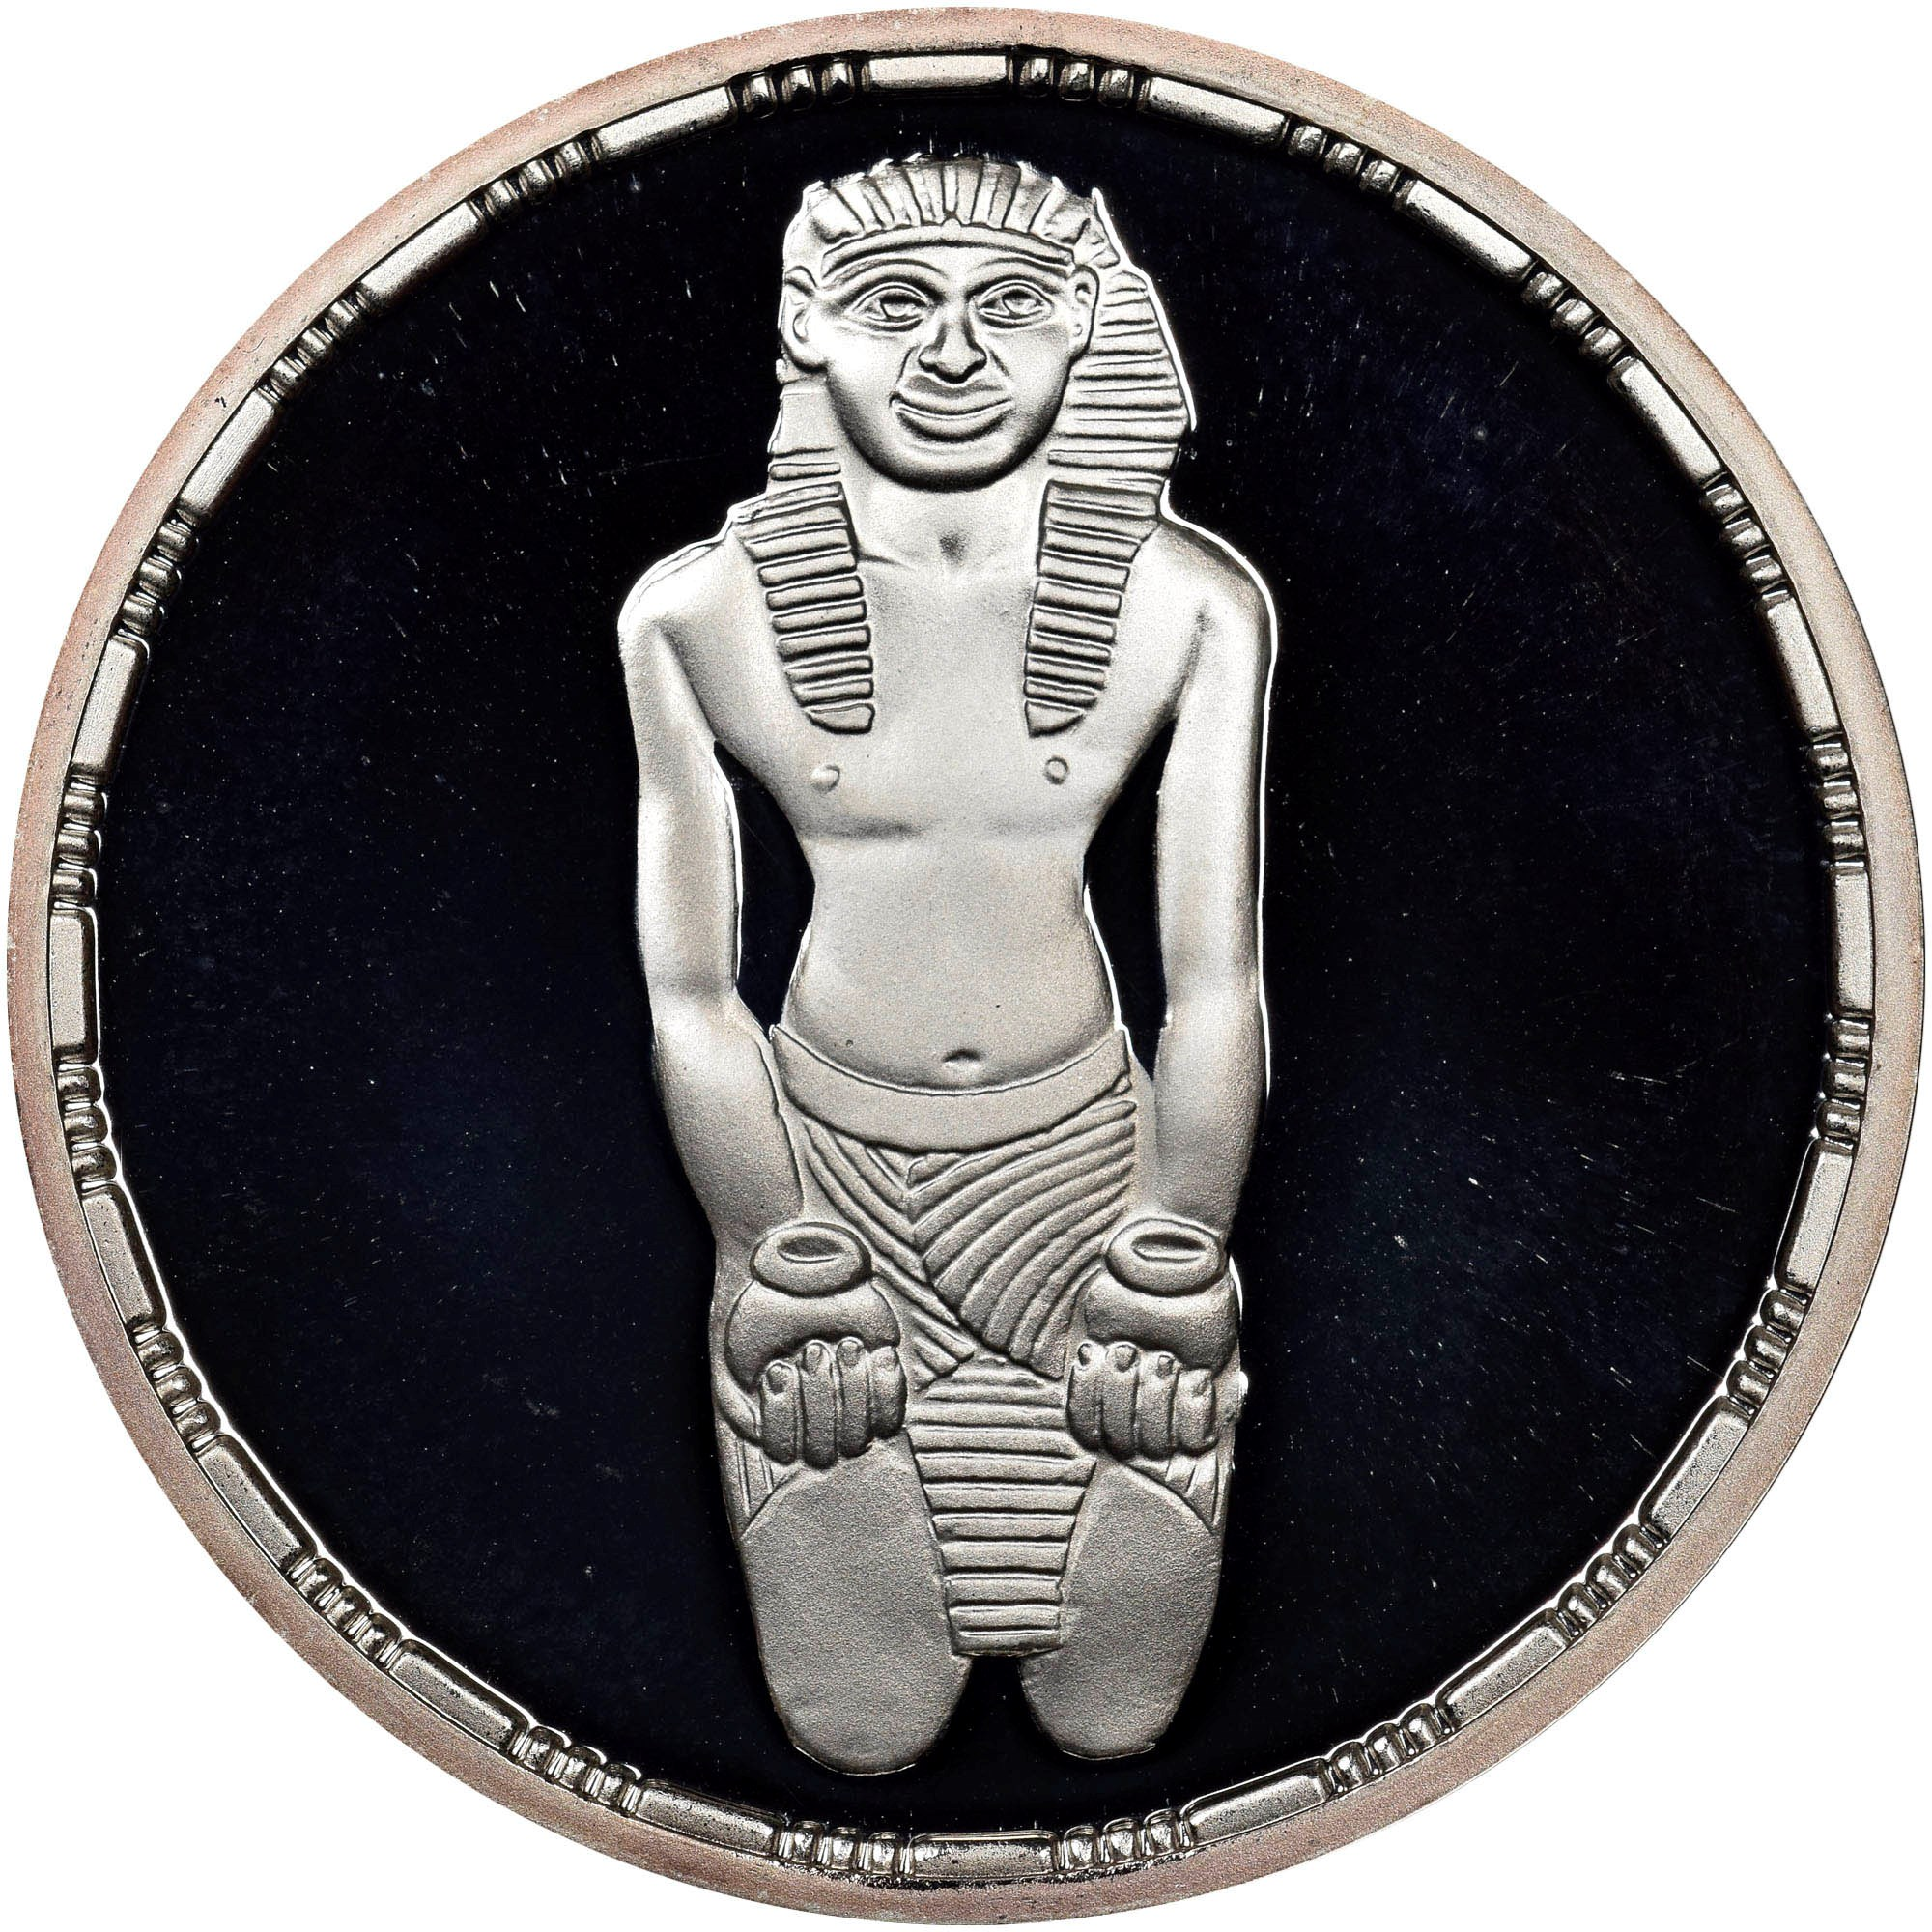 Egypt 1993 Menkaure Triad 5 Pounds Silver Coin,Proof